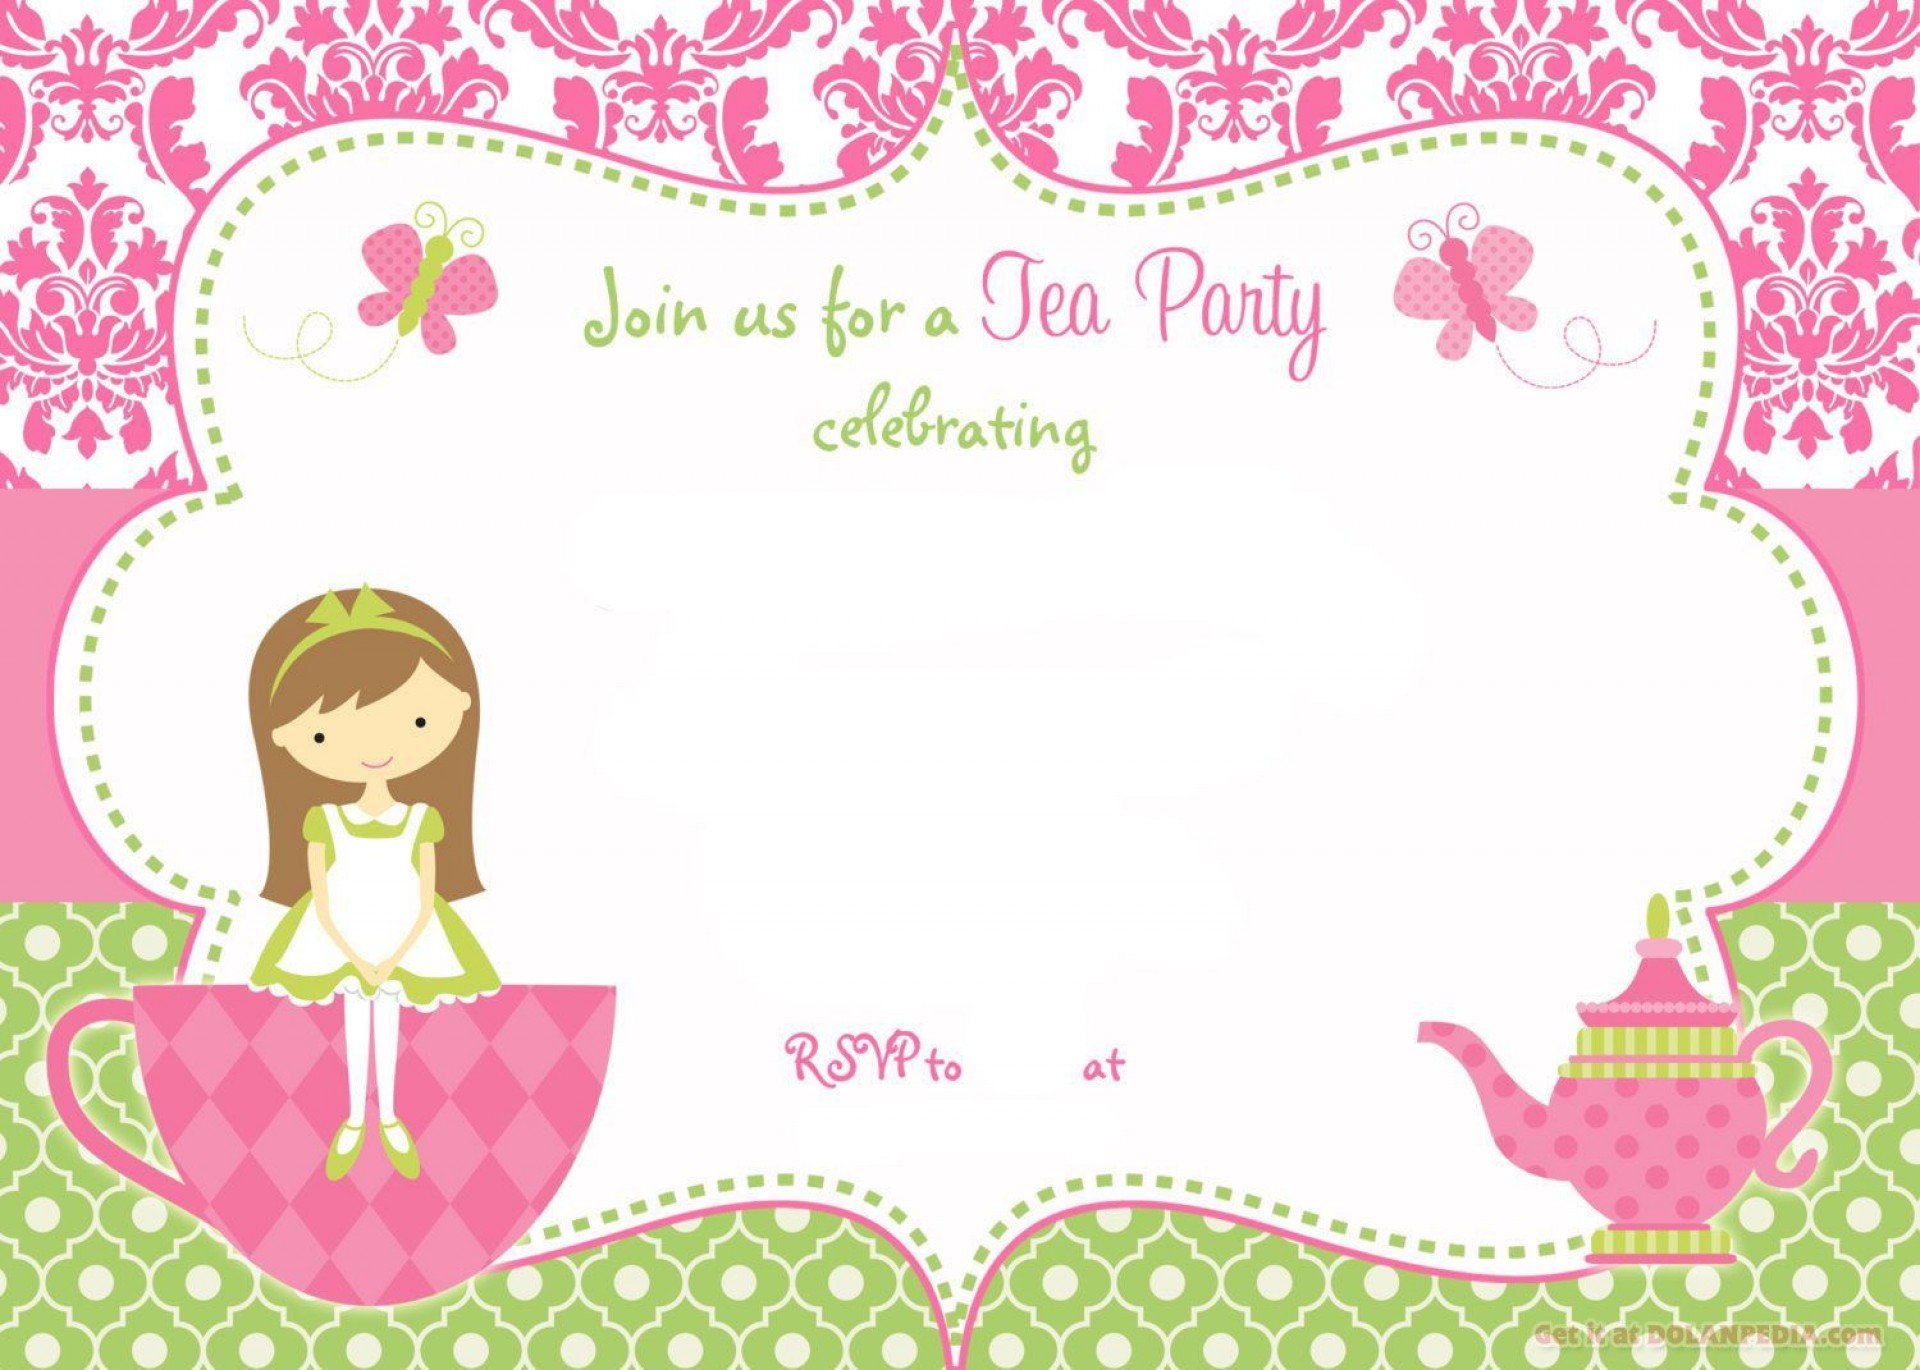 002 Shocking Tea Party Invitation Template High Def  Online Letter1920